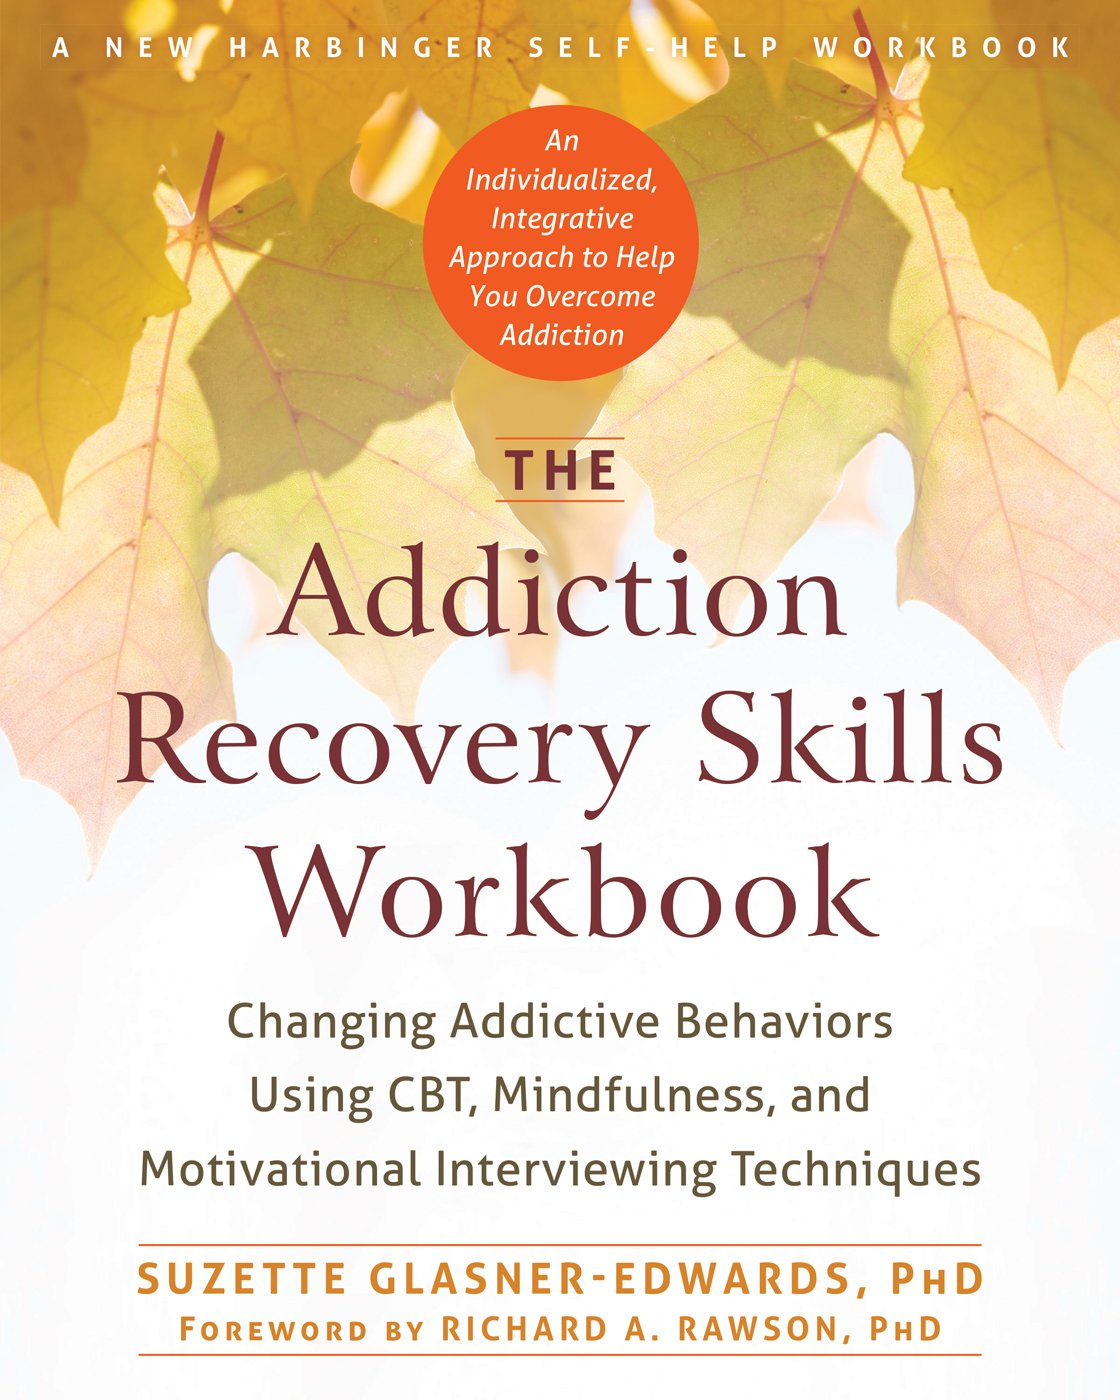 The Addiction Recovery Skills Workbook Changing Addictive Behaviors